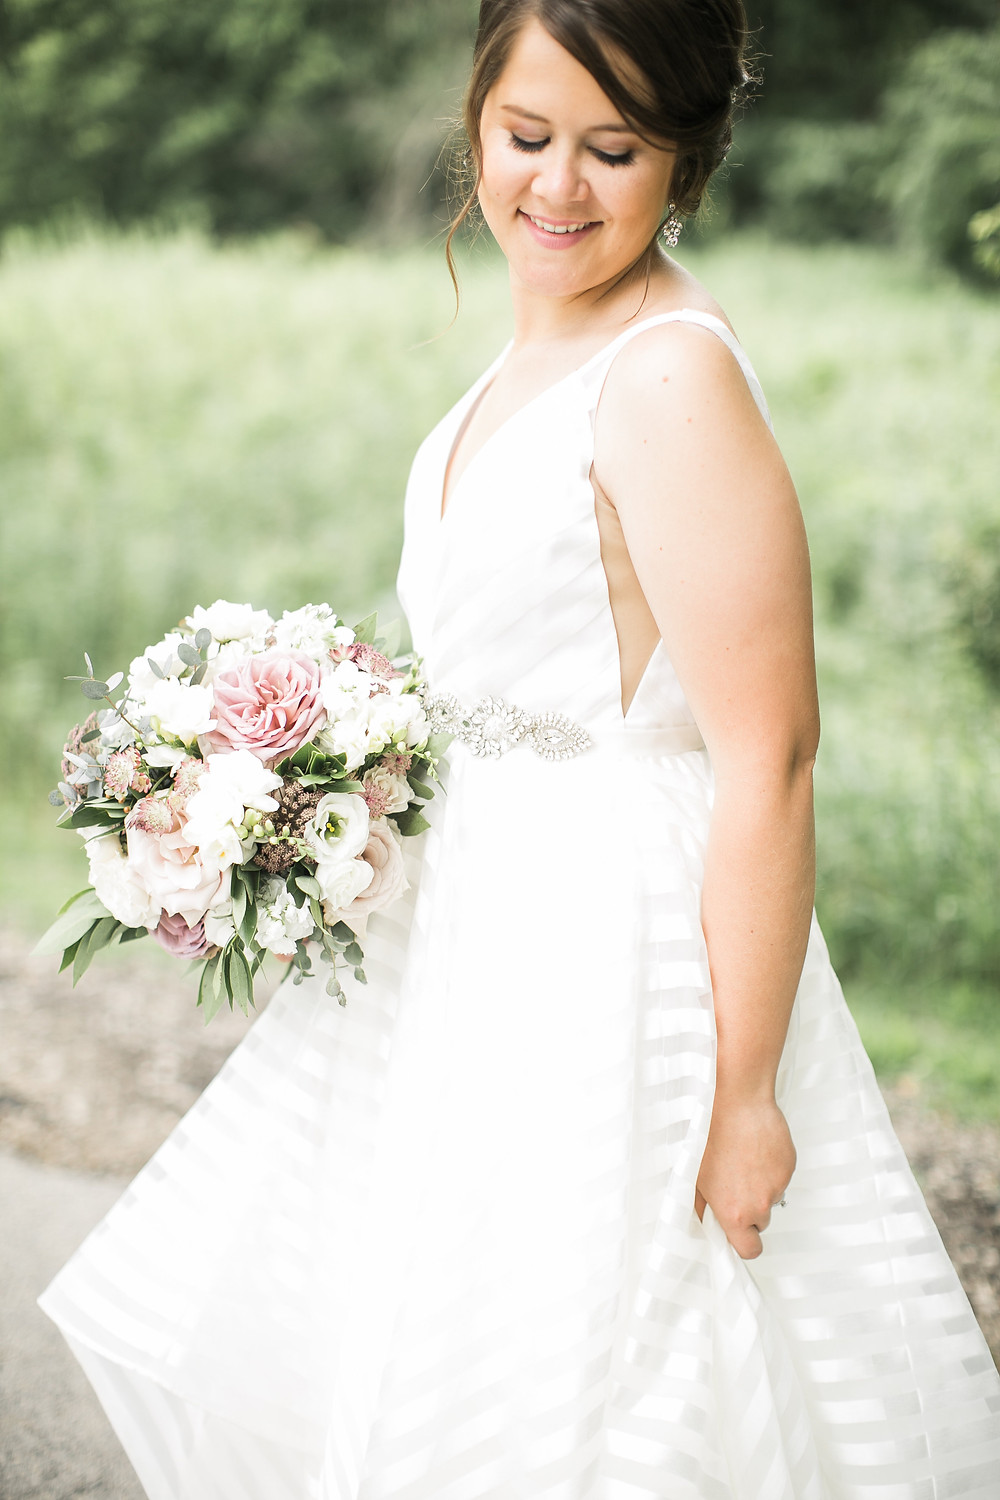 bride in striped wedding dress with mauve and white bridal bouquet of roses, ranunculus, and freesia by studio bloom iowa